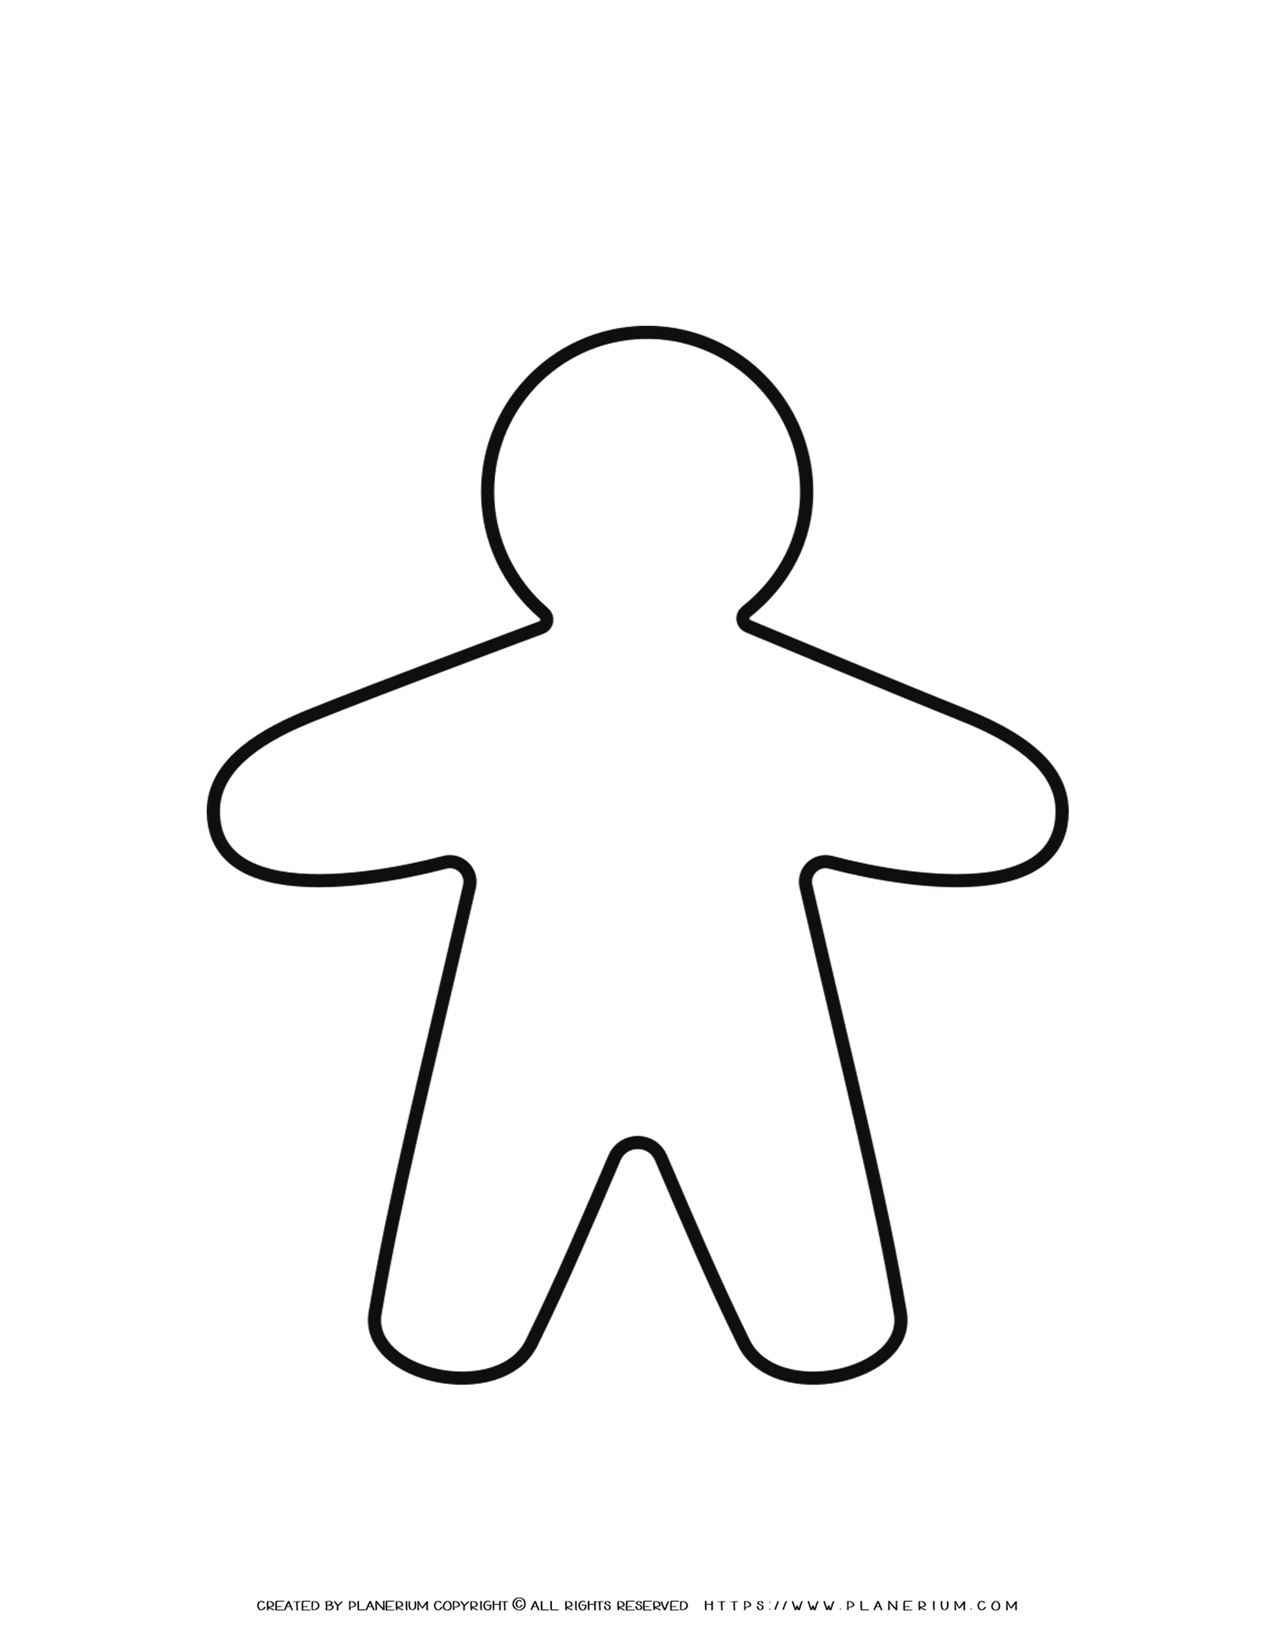 Gingerbread Template - Male | Planerium